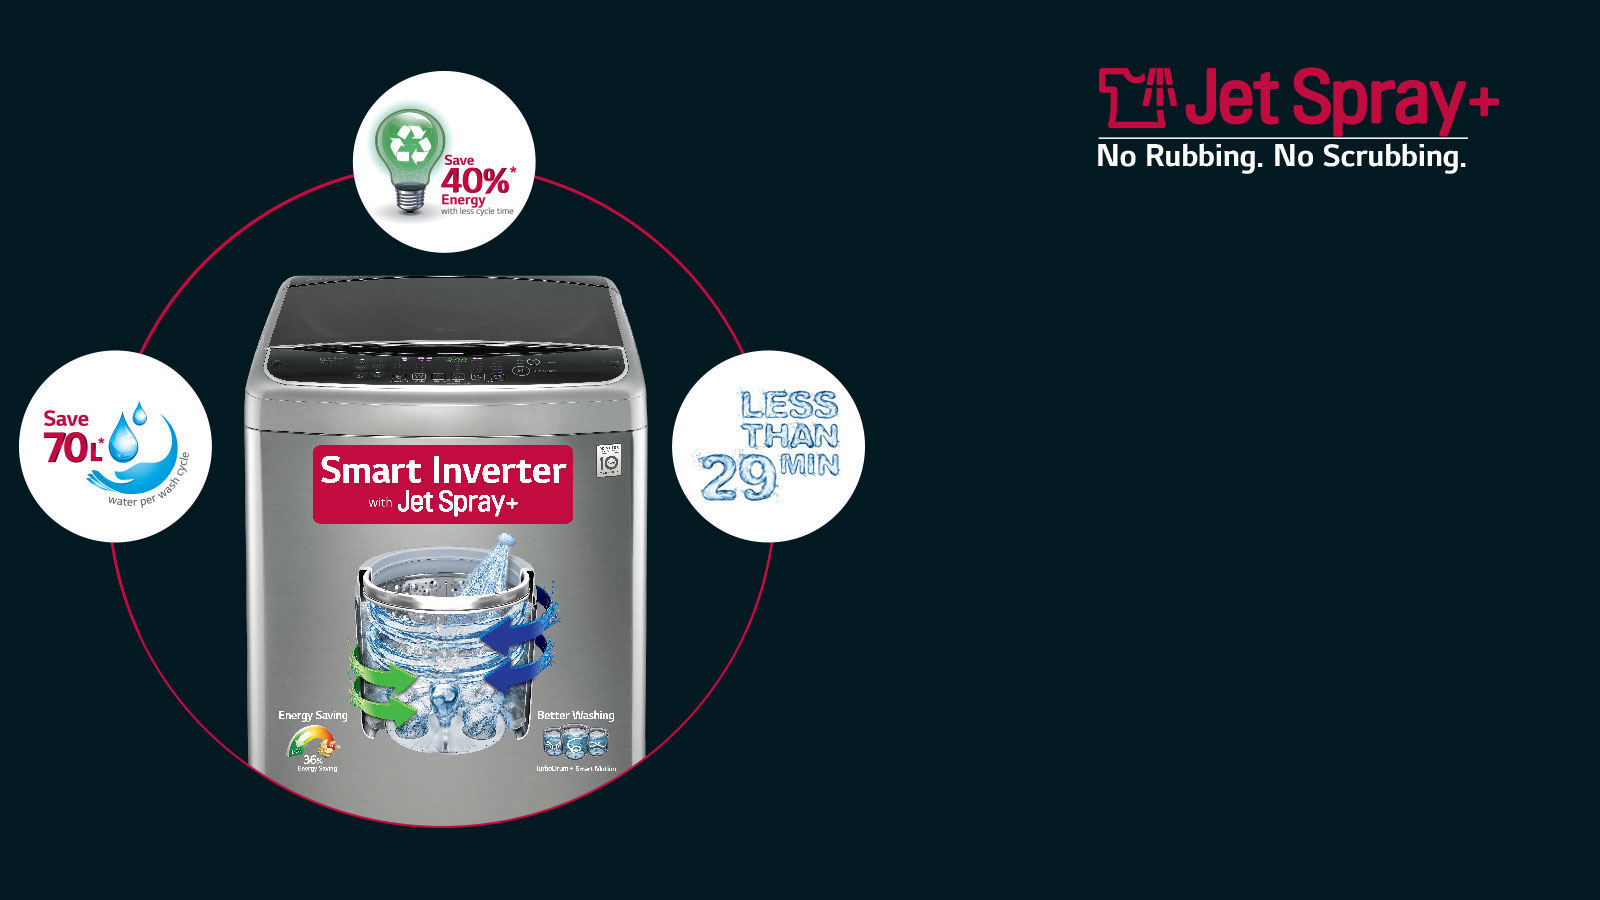 LG Top Loading Washing Machine with Jet Spray+